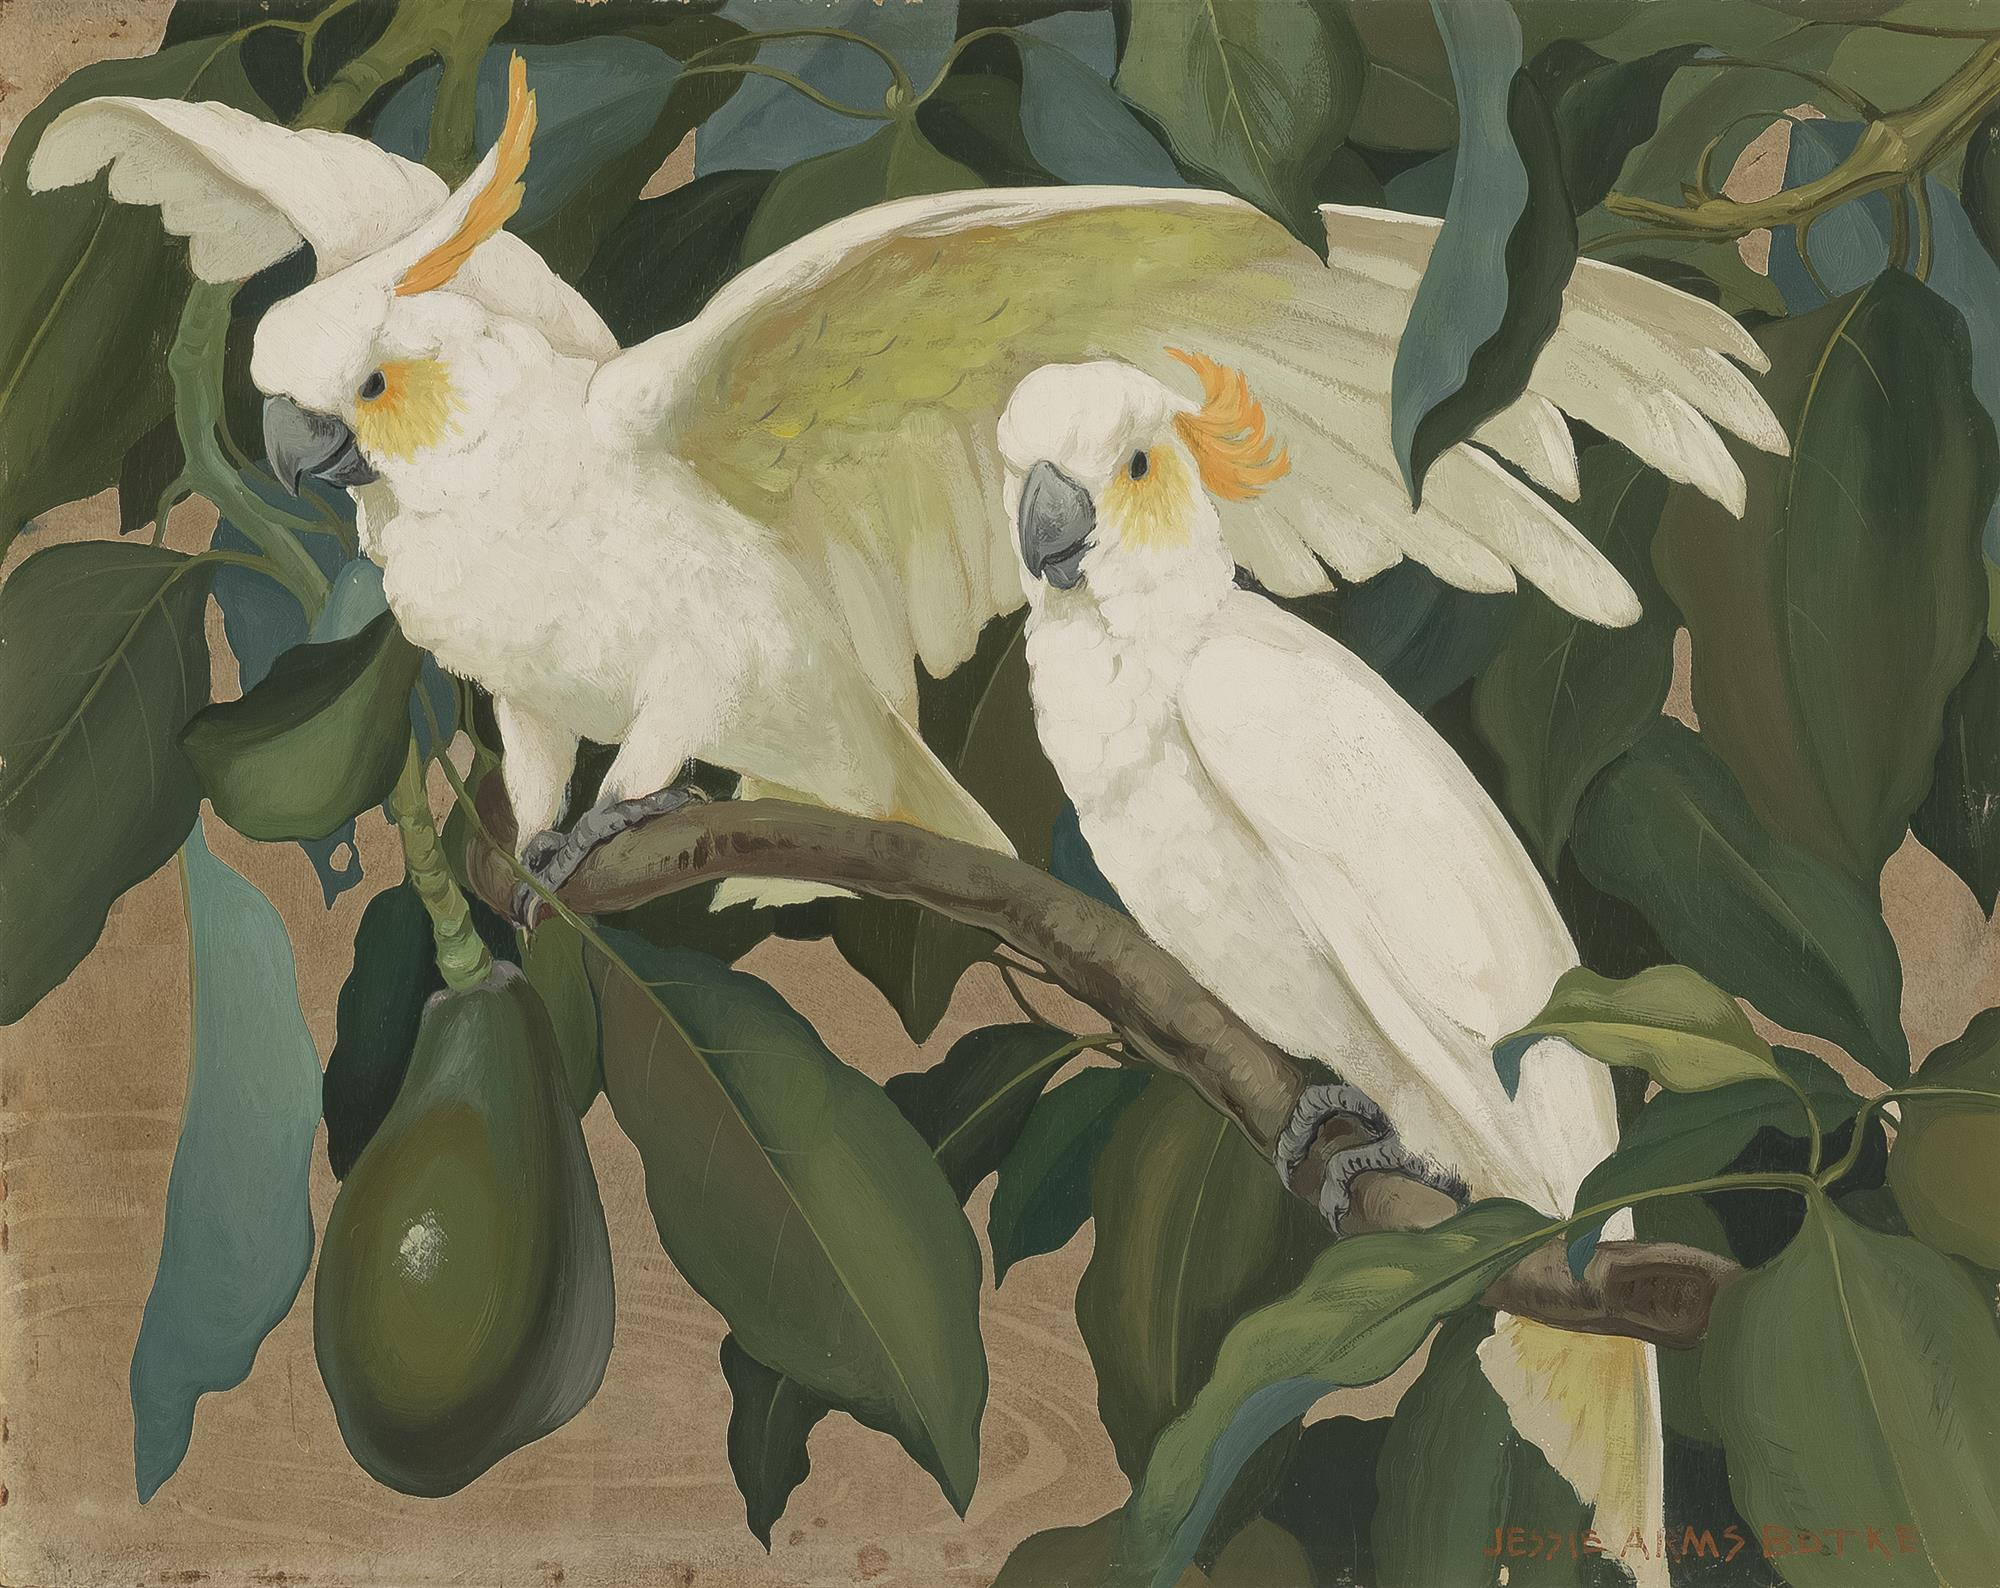 """Jessie Arms Botke, (1883-1971 Santa Paula, CA), White cockatoos in an avocado tree, Oil and gold leaf on canvasboard, 16"""" H x 20"""" W"""